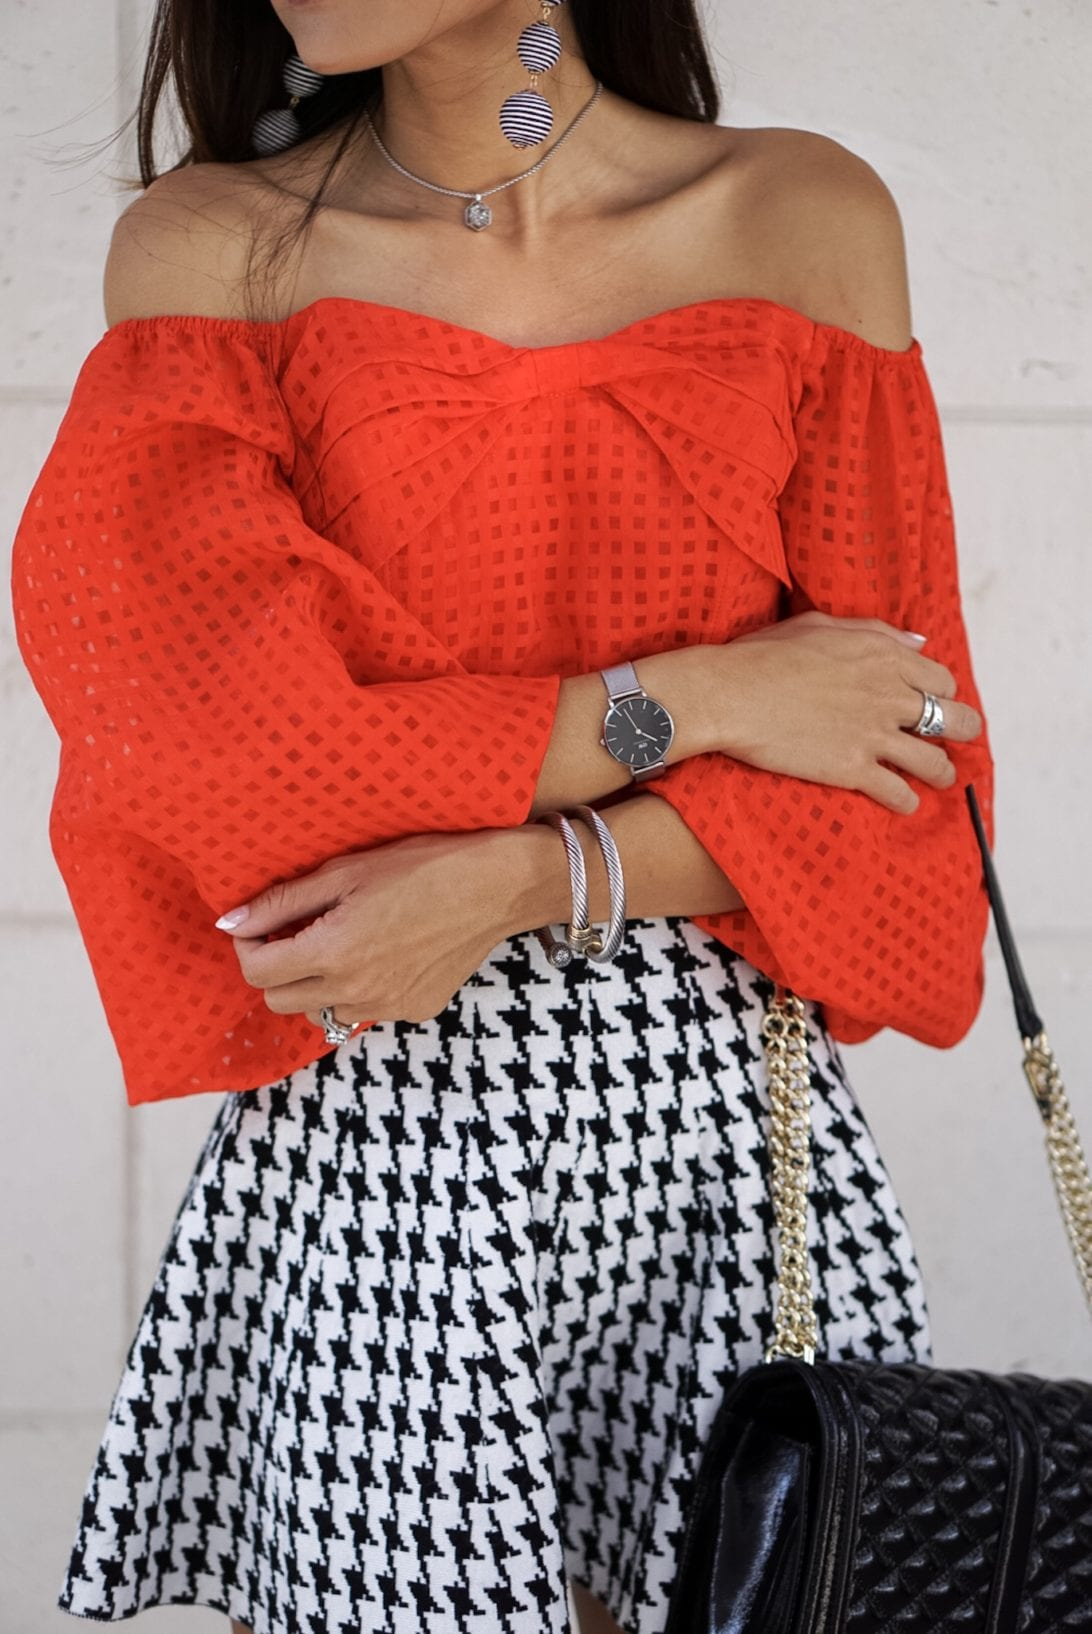 RED OFF THE SHOULDER BASKET WEAVE TOP WITH BOW TIE WAIST, daniel wellington watch, petite watch, austin earring, charming charlie, houndstooth skirt, puff sleeves, love cross body bag, flap bag, louboutin heels, black patent heels